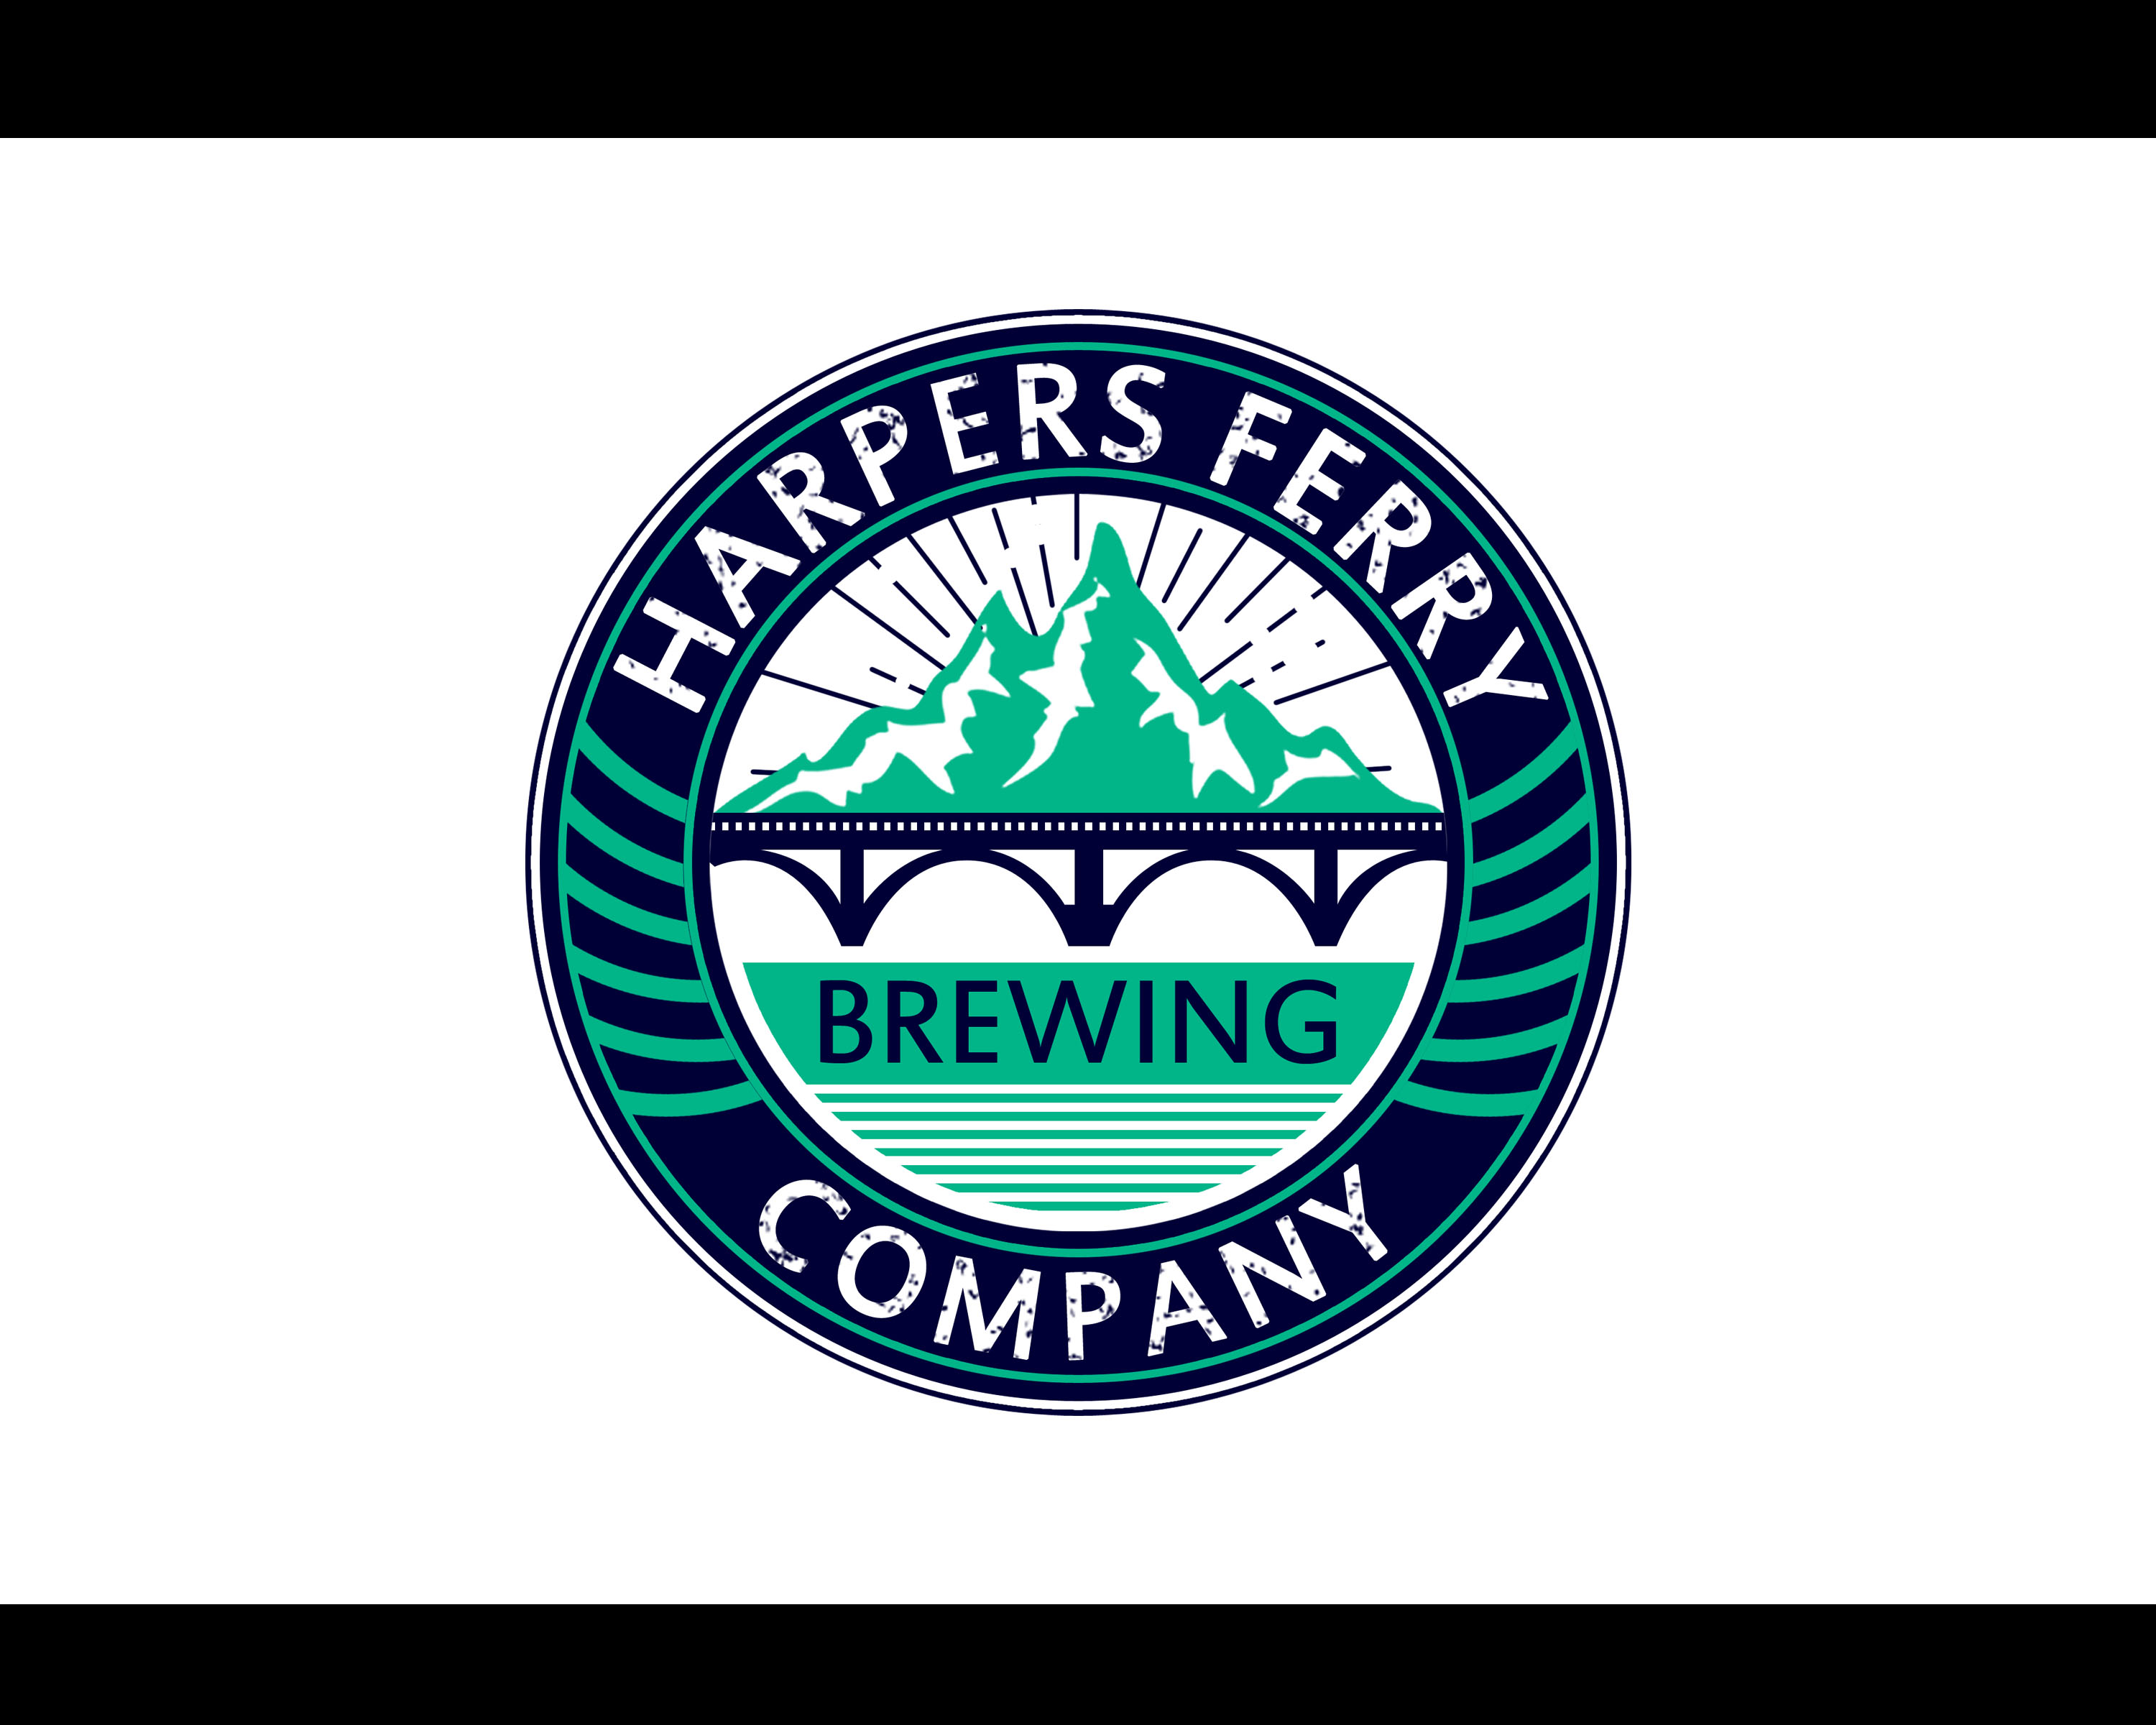 Logo Design by Ian jade Laman - Entry No. 122 in the Logo Design Contest Unique Logo Design Wanted for Harpers ferry brewing company.